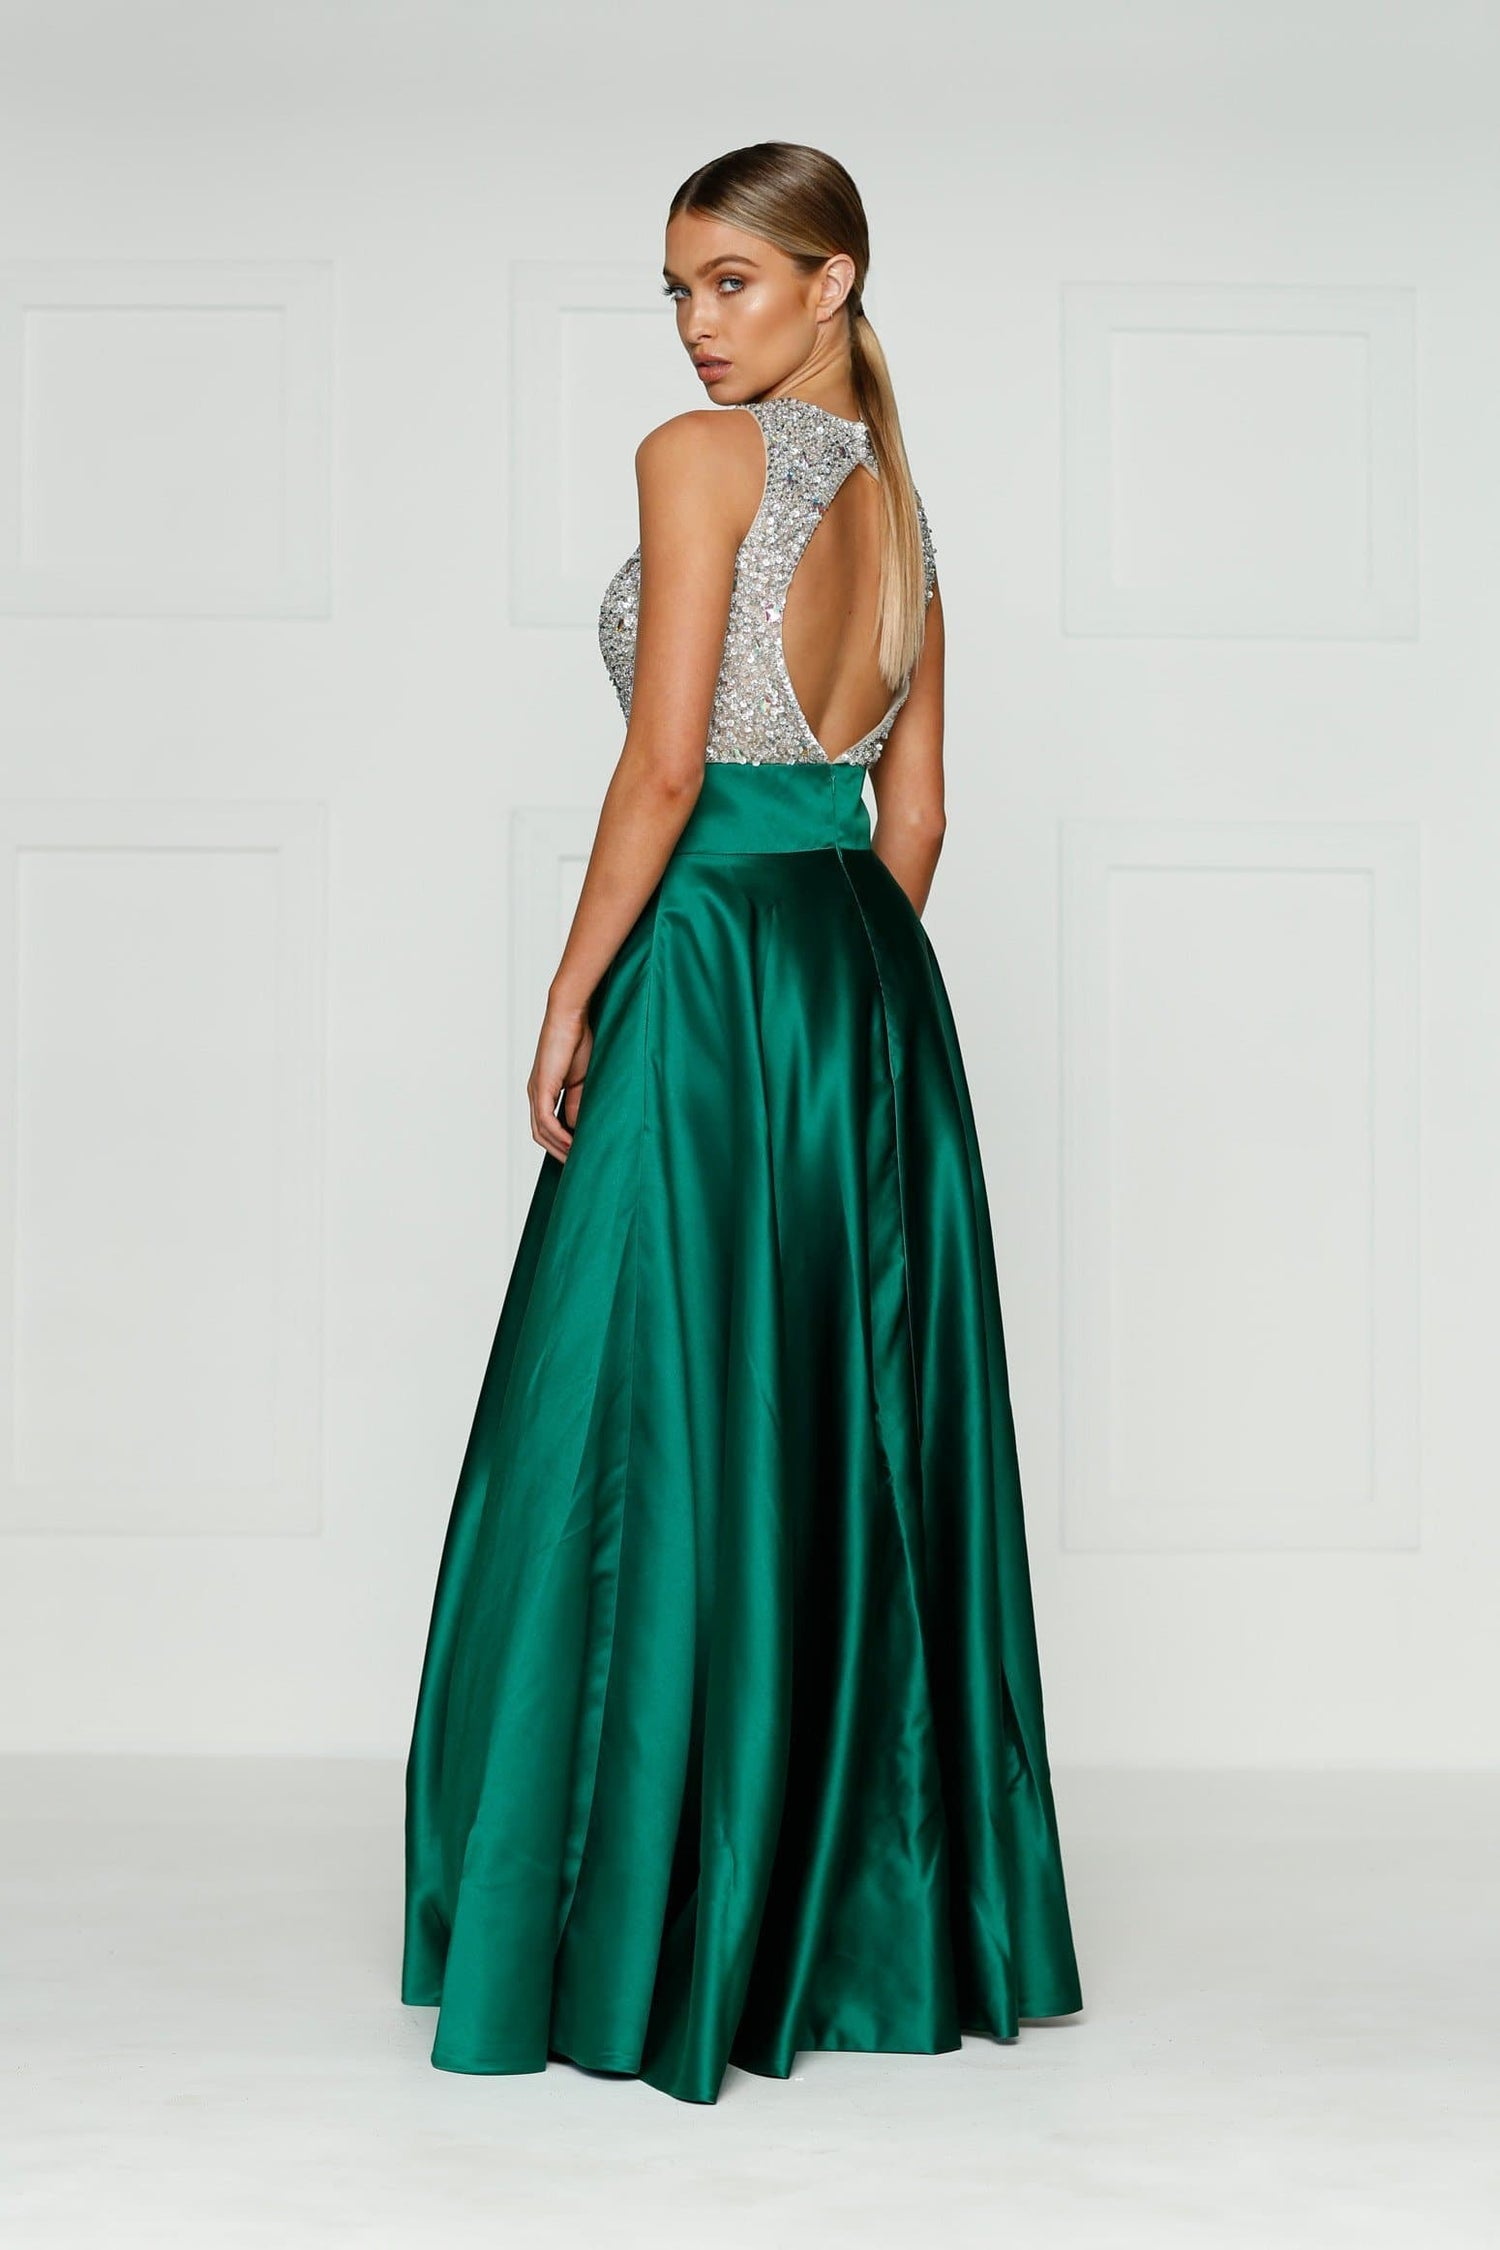 A&N Susu - Emerald Rhinestones Gown with High Neck and Back Detail